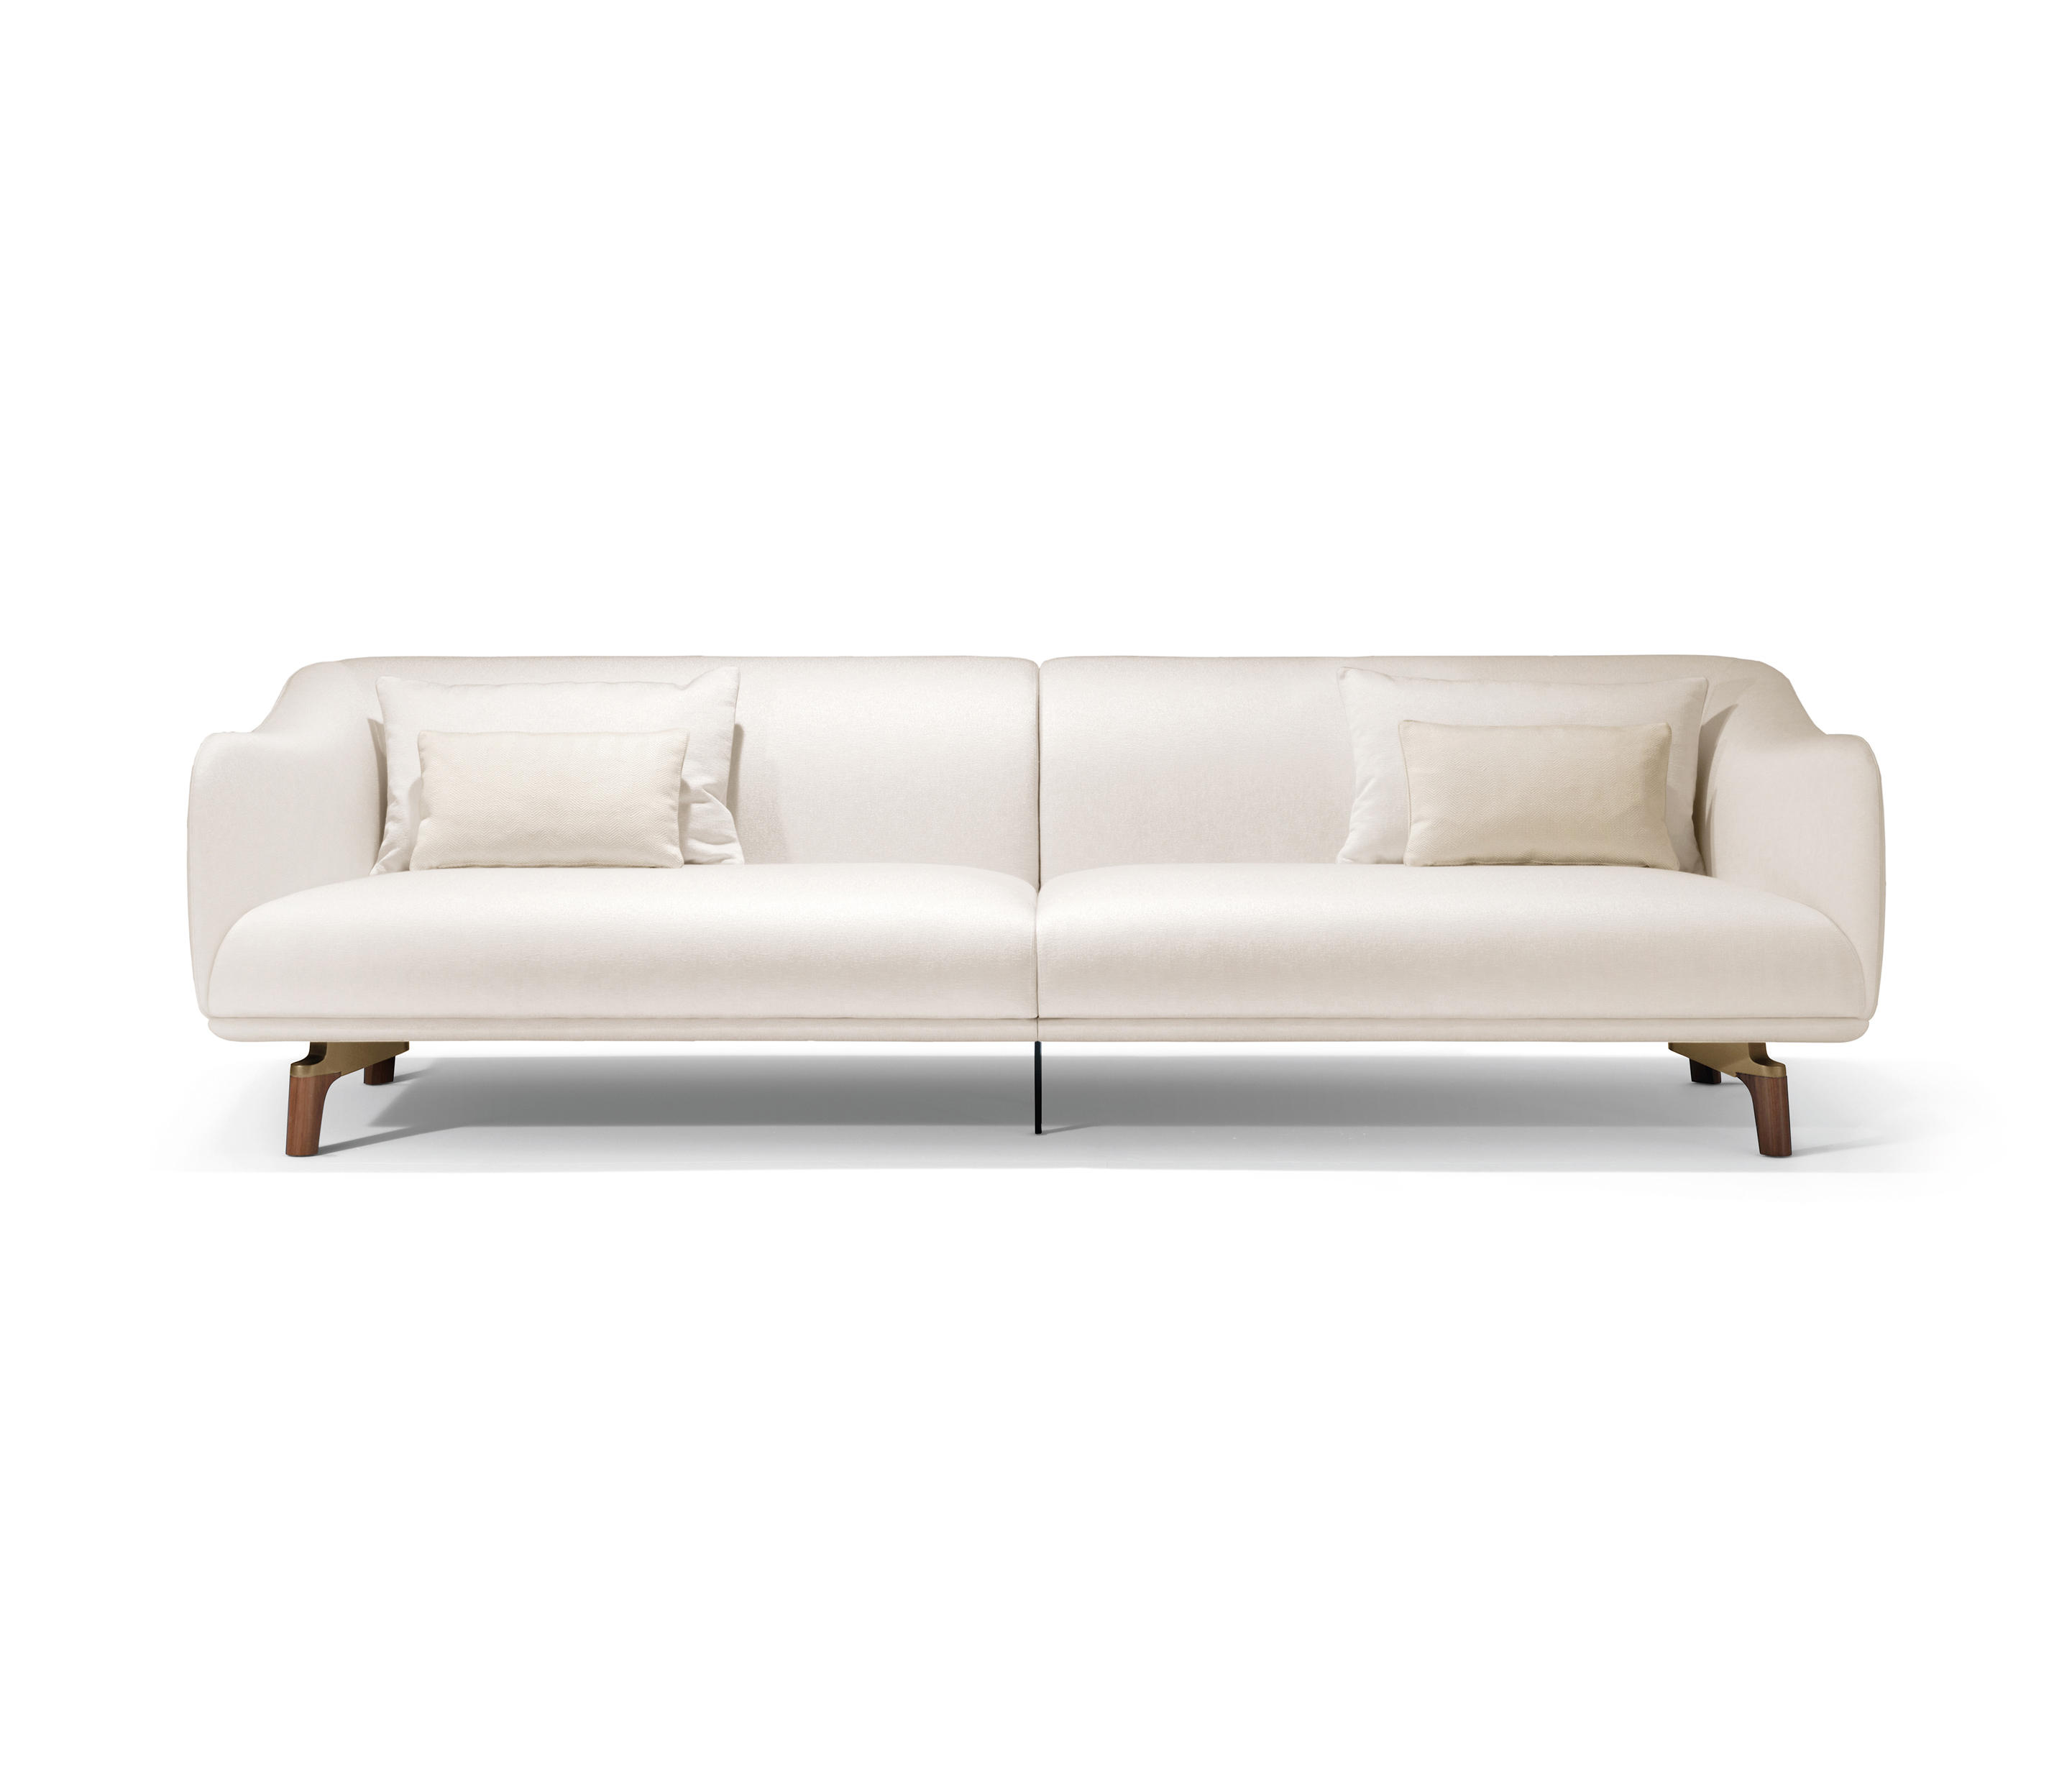 lounging sofa fabric corner with removable covers drive lounge sofas from giorgetti architonic